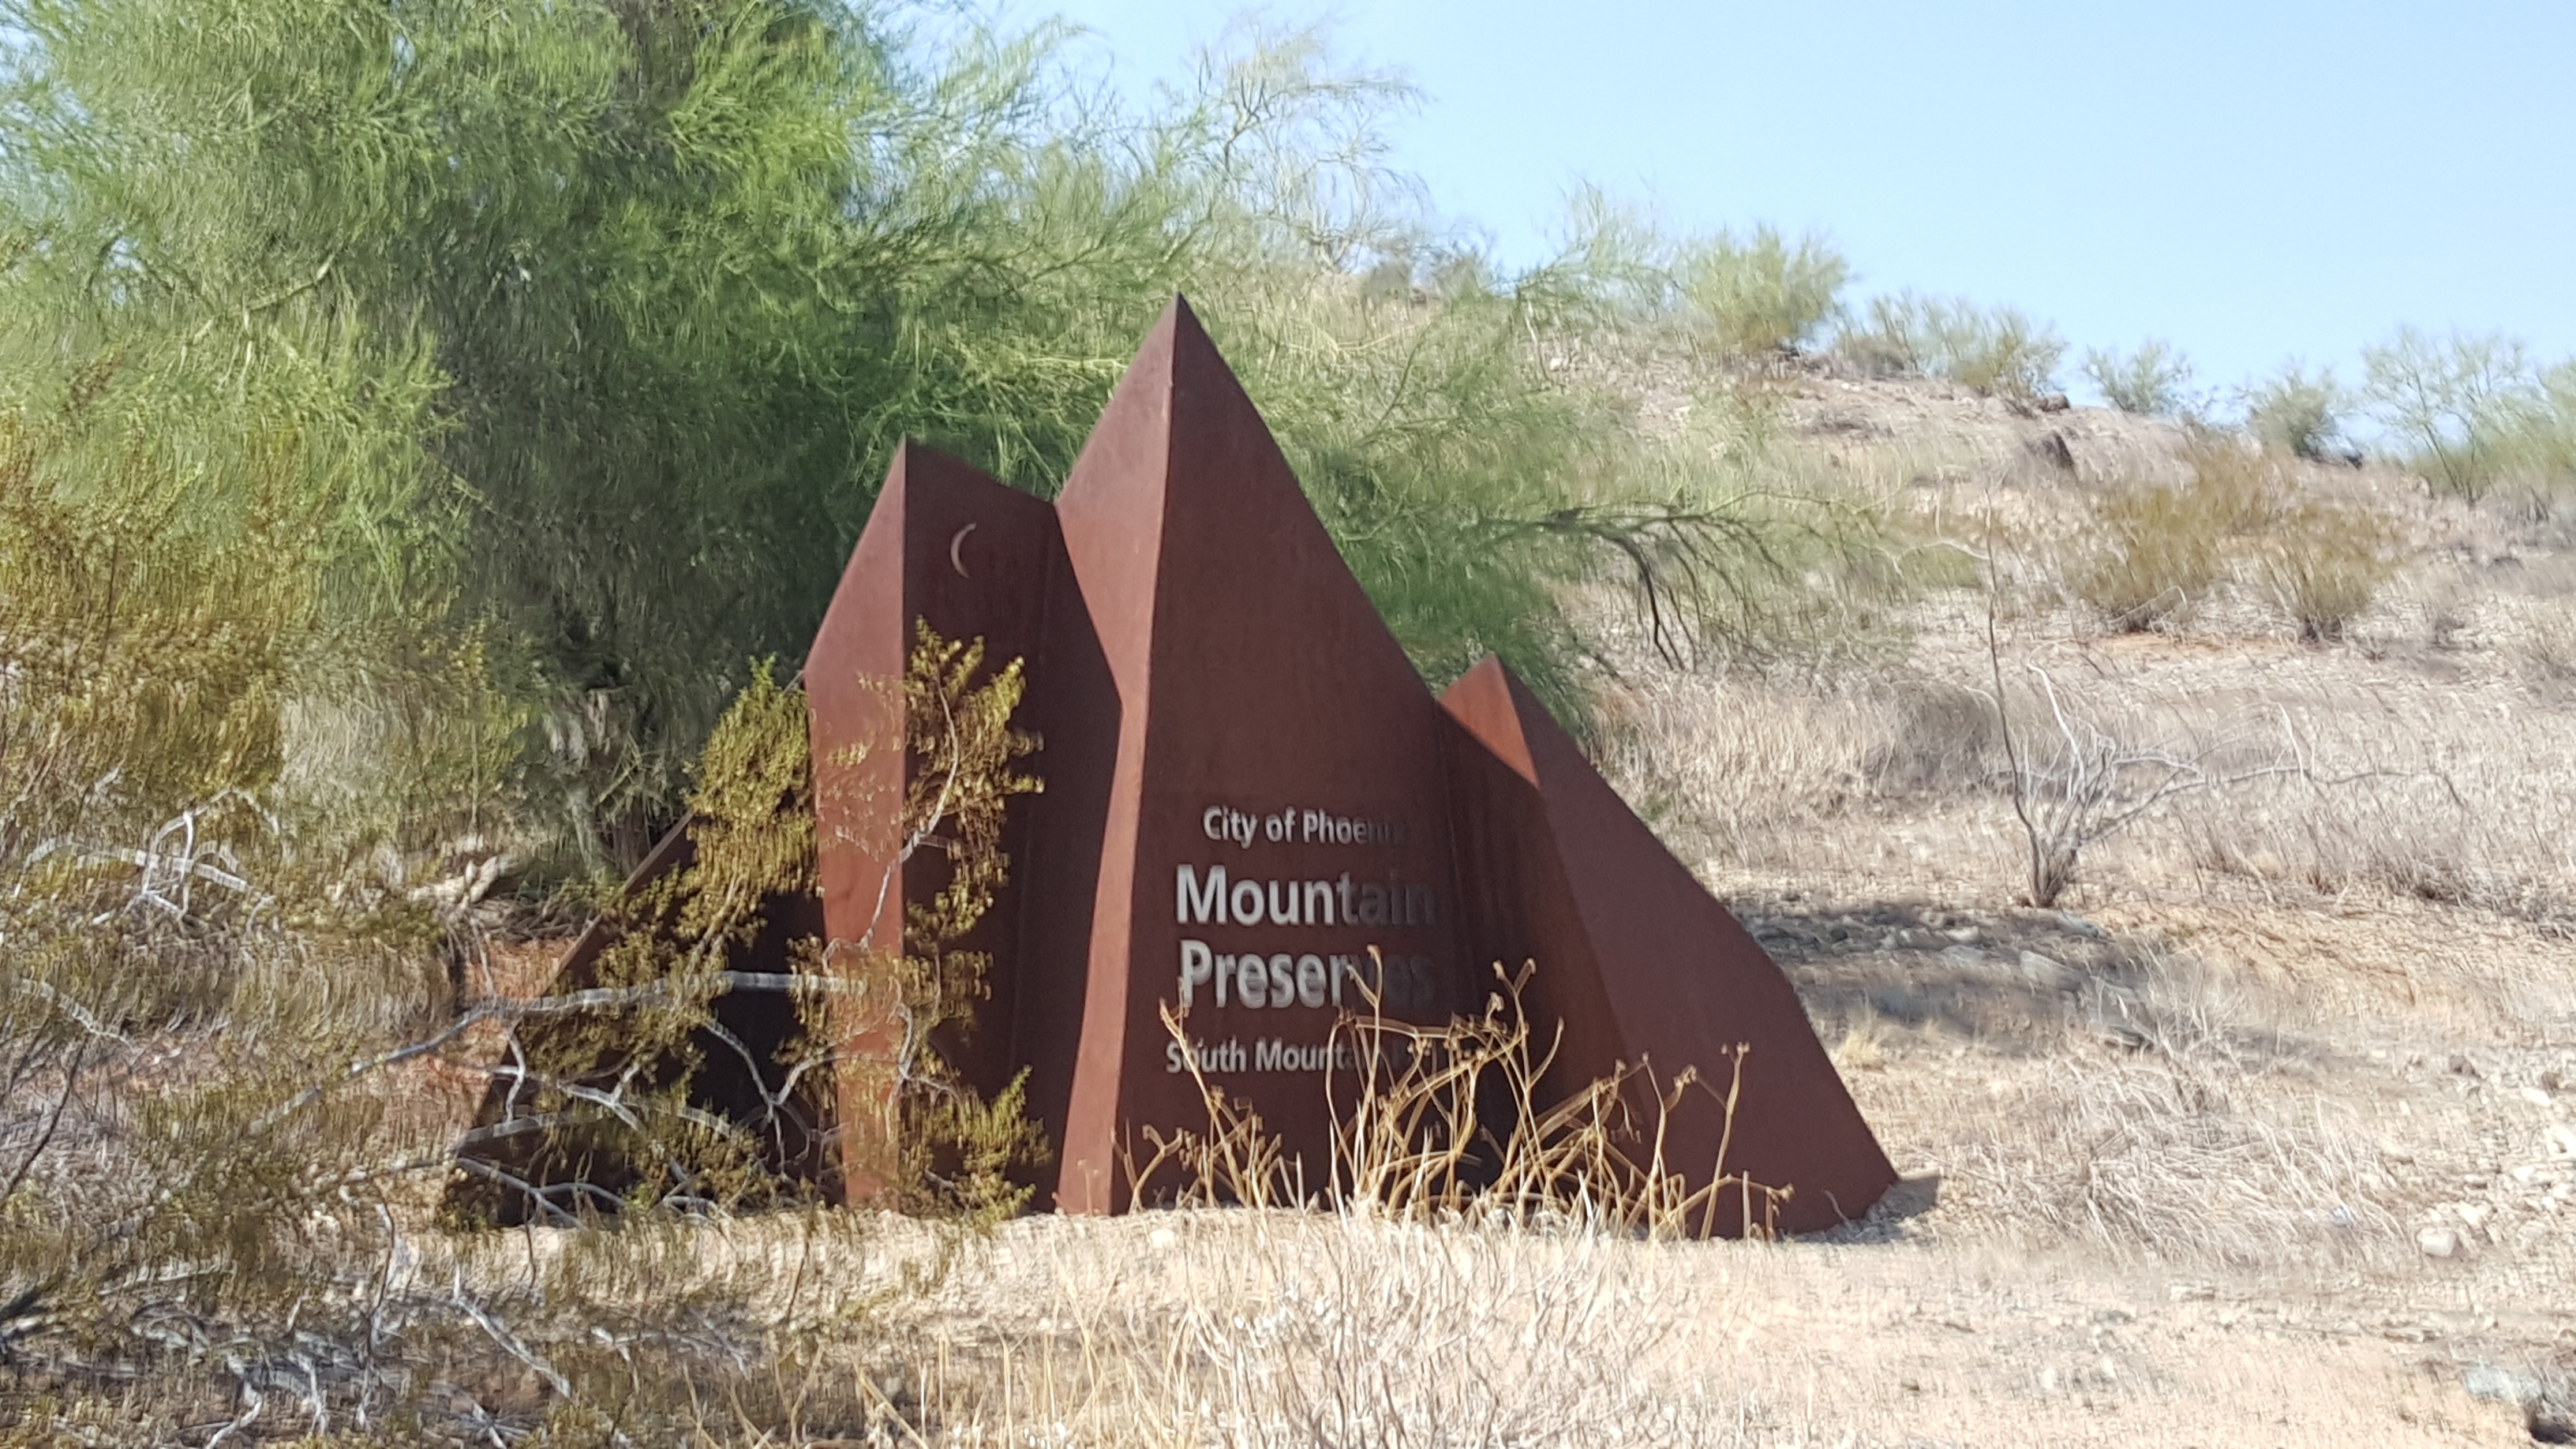 south mountain park - wikipedia